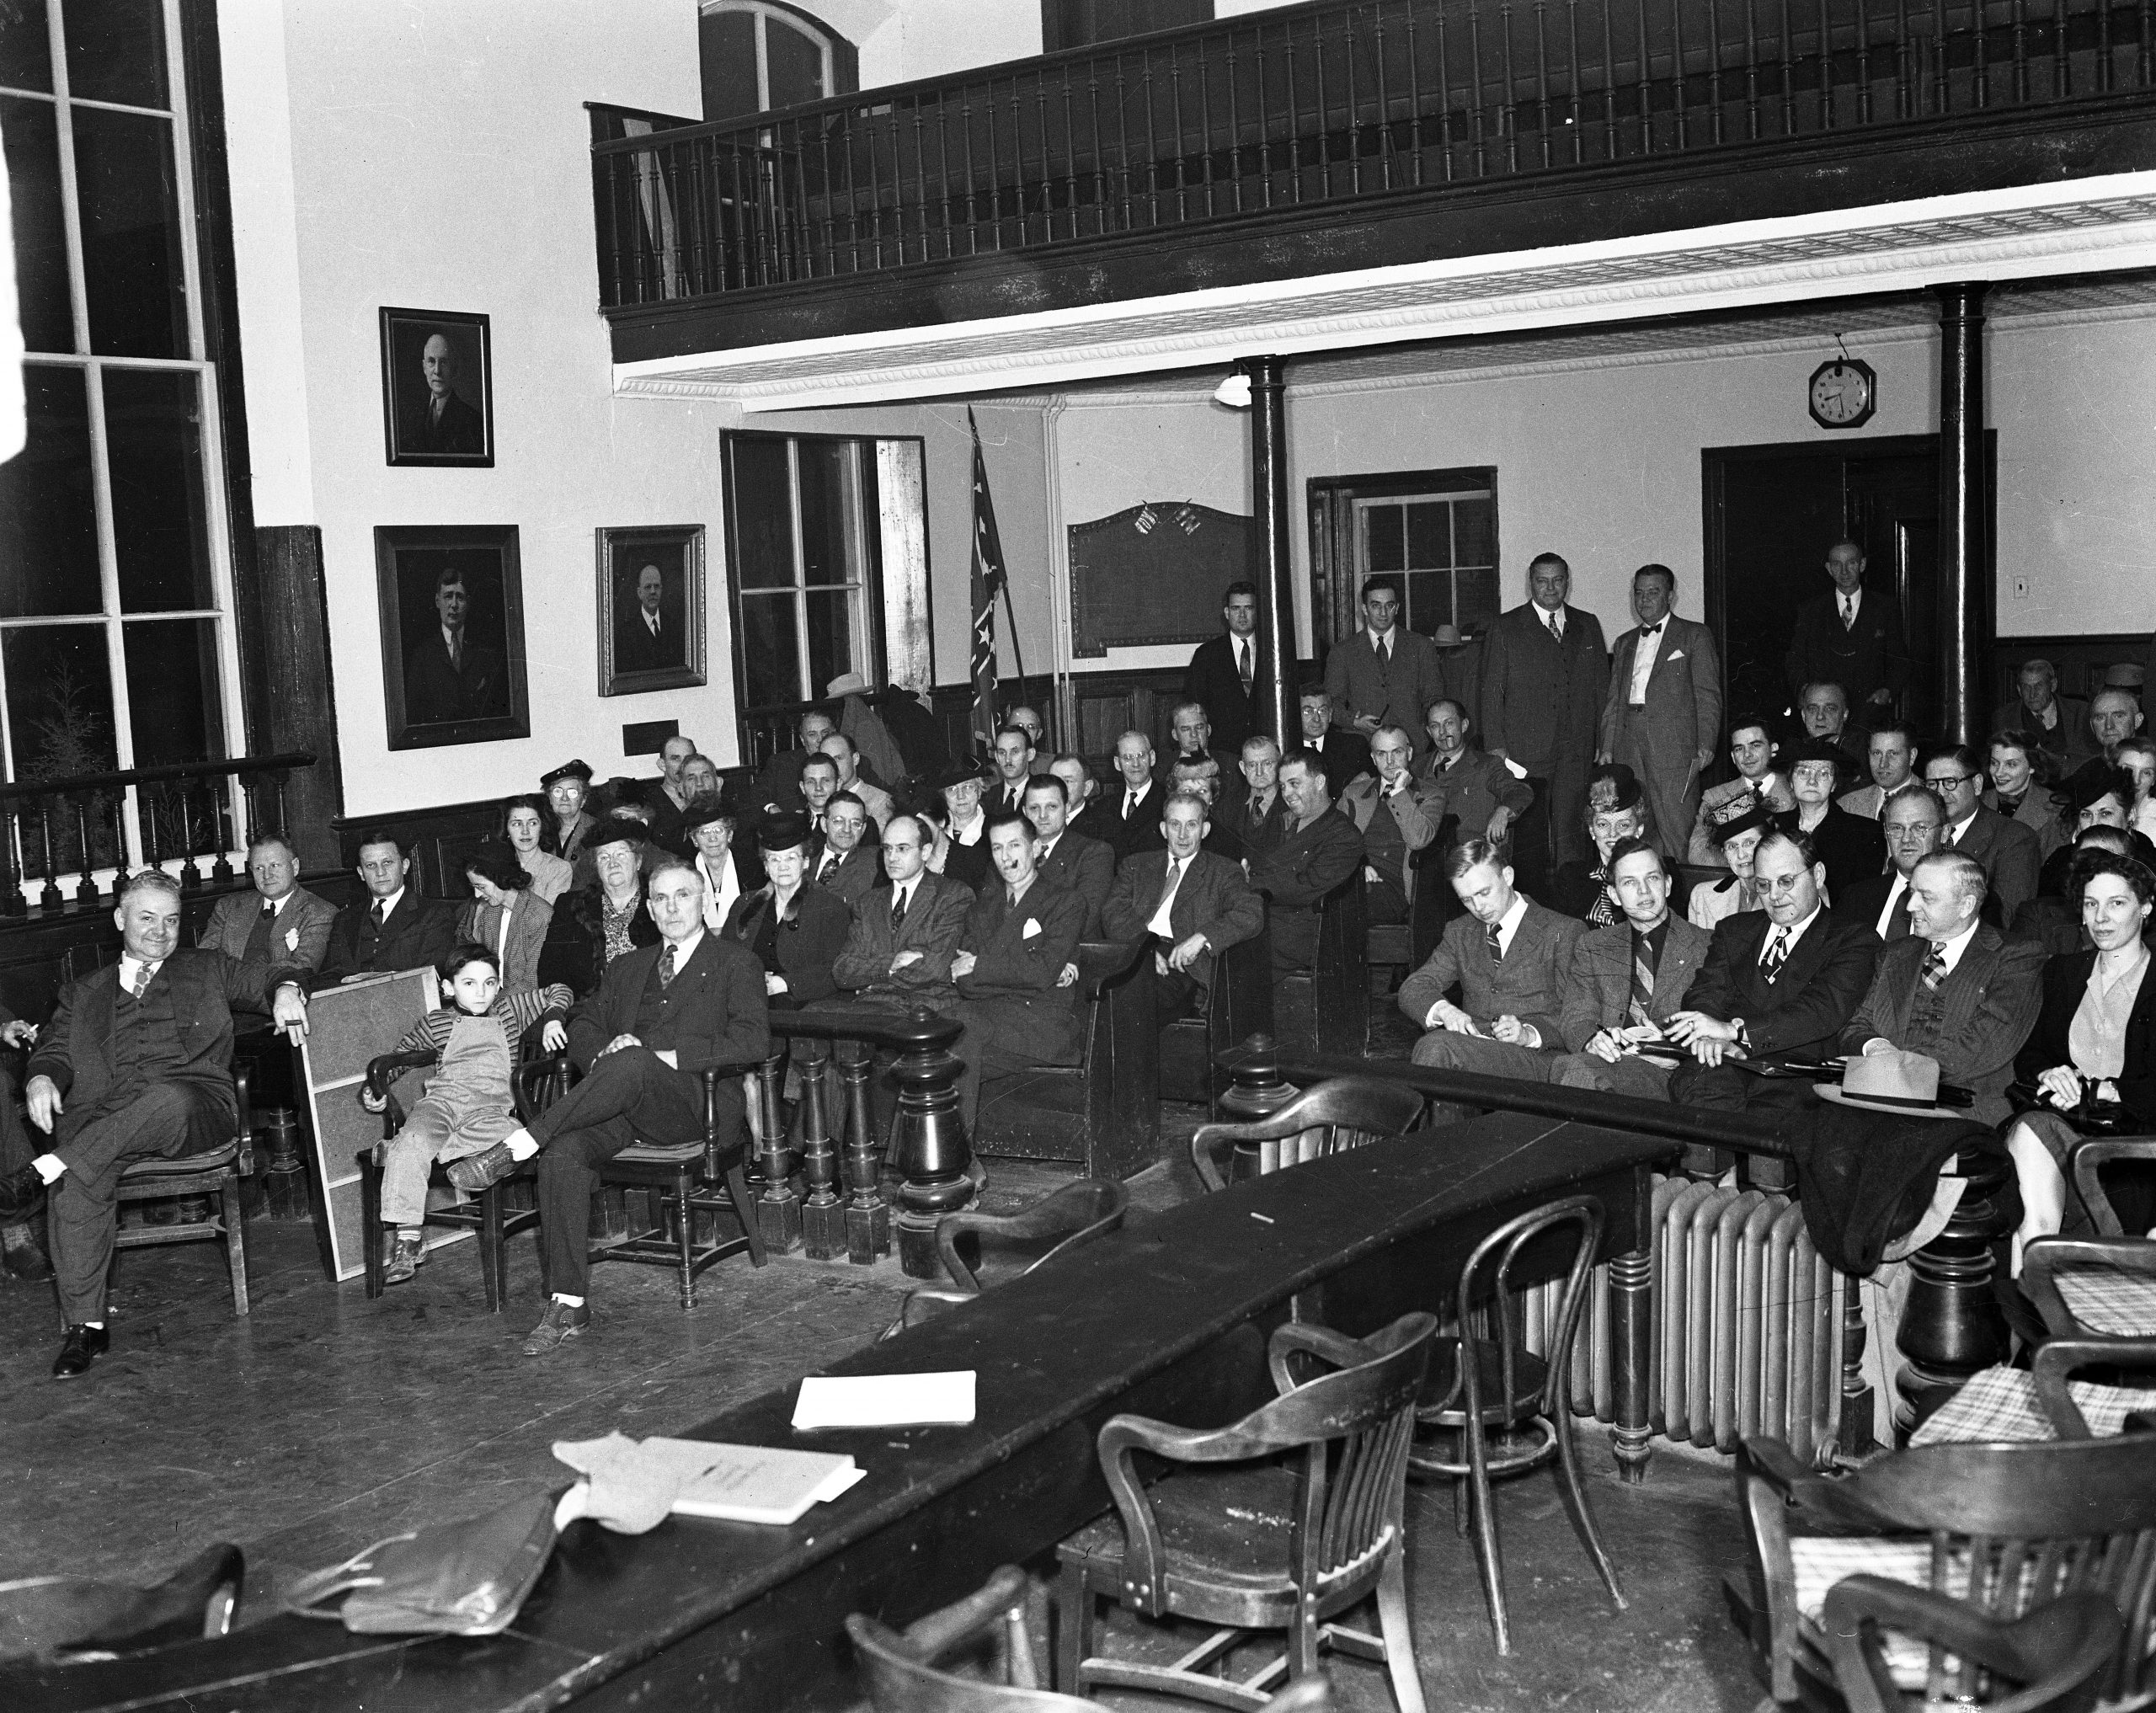 Republican Meeting at Fairfax Courthouse